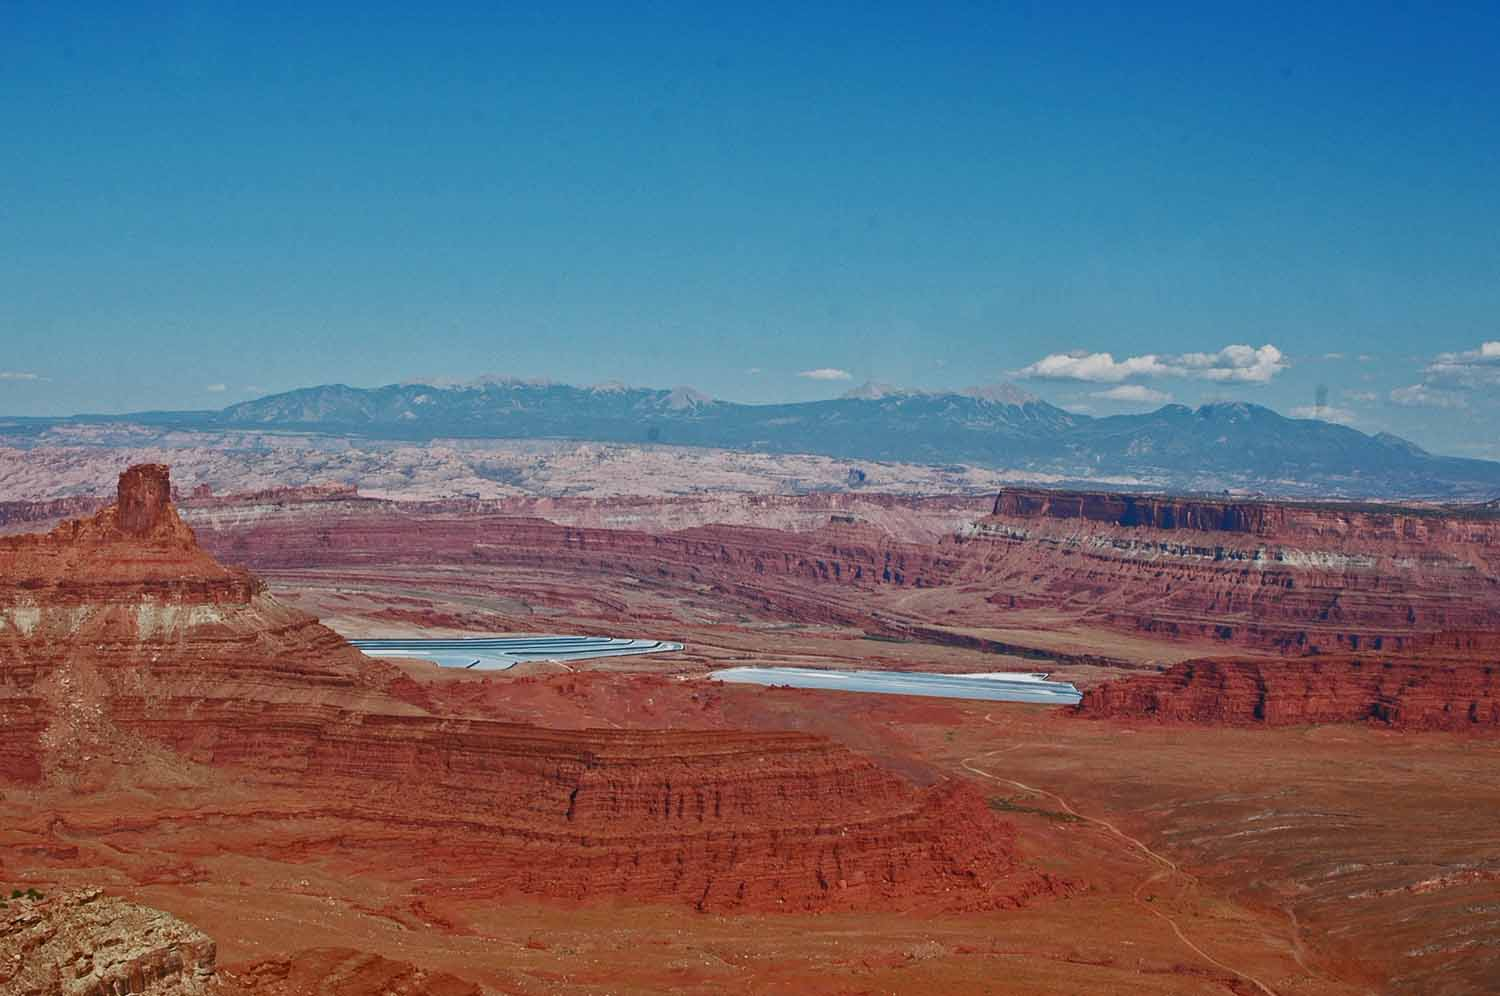 Dead Horse Point - Phosphate mining in the valley